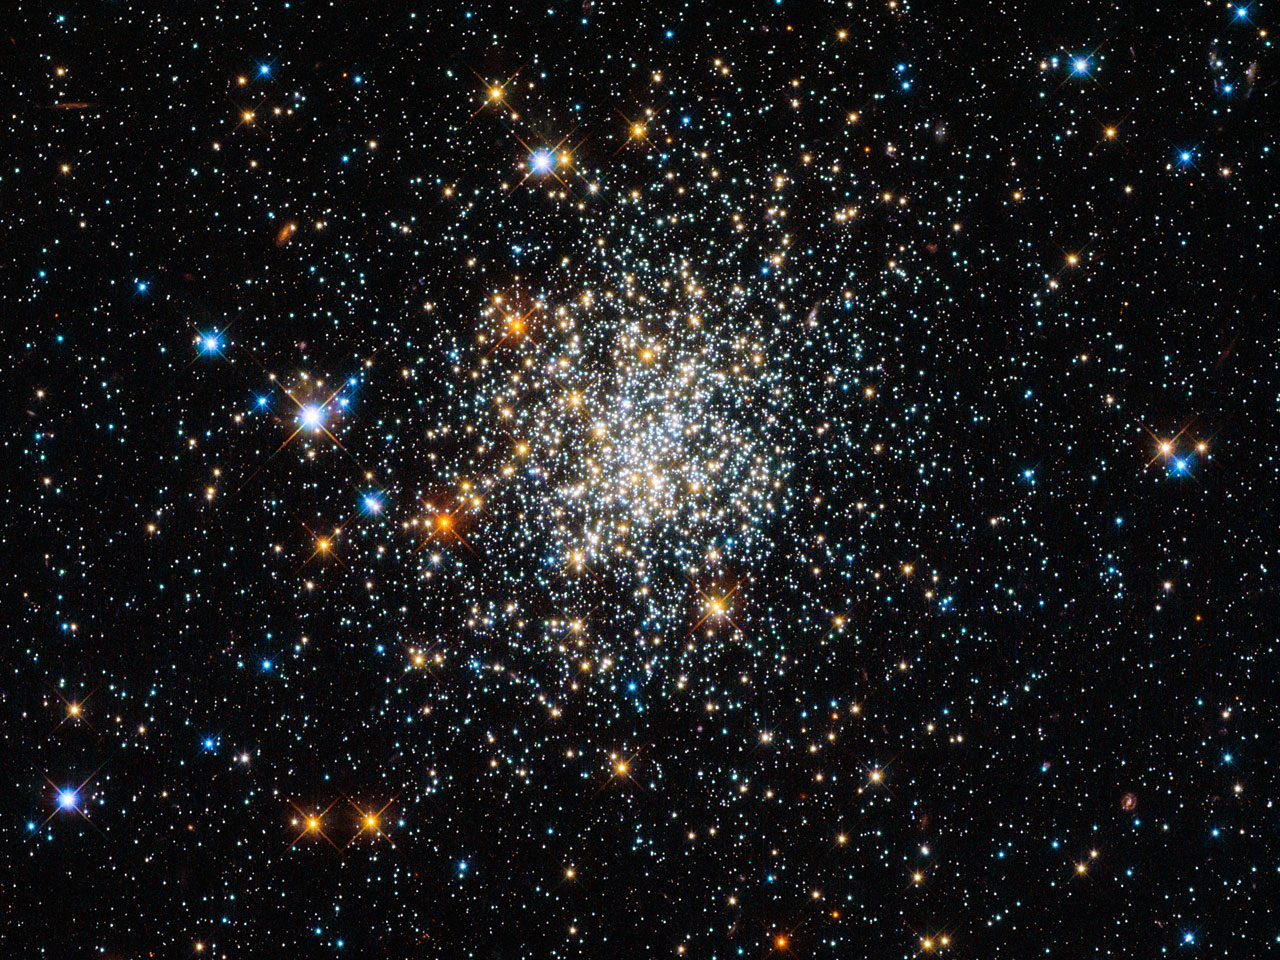 nasa galaxy pictures high resolution - photo #29